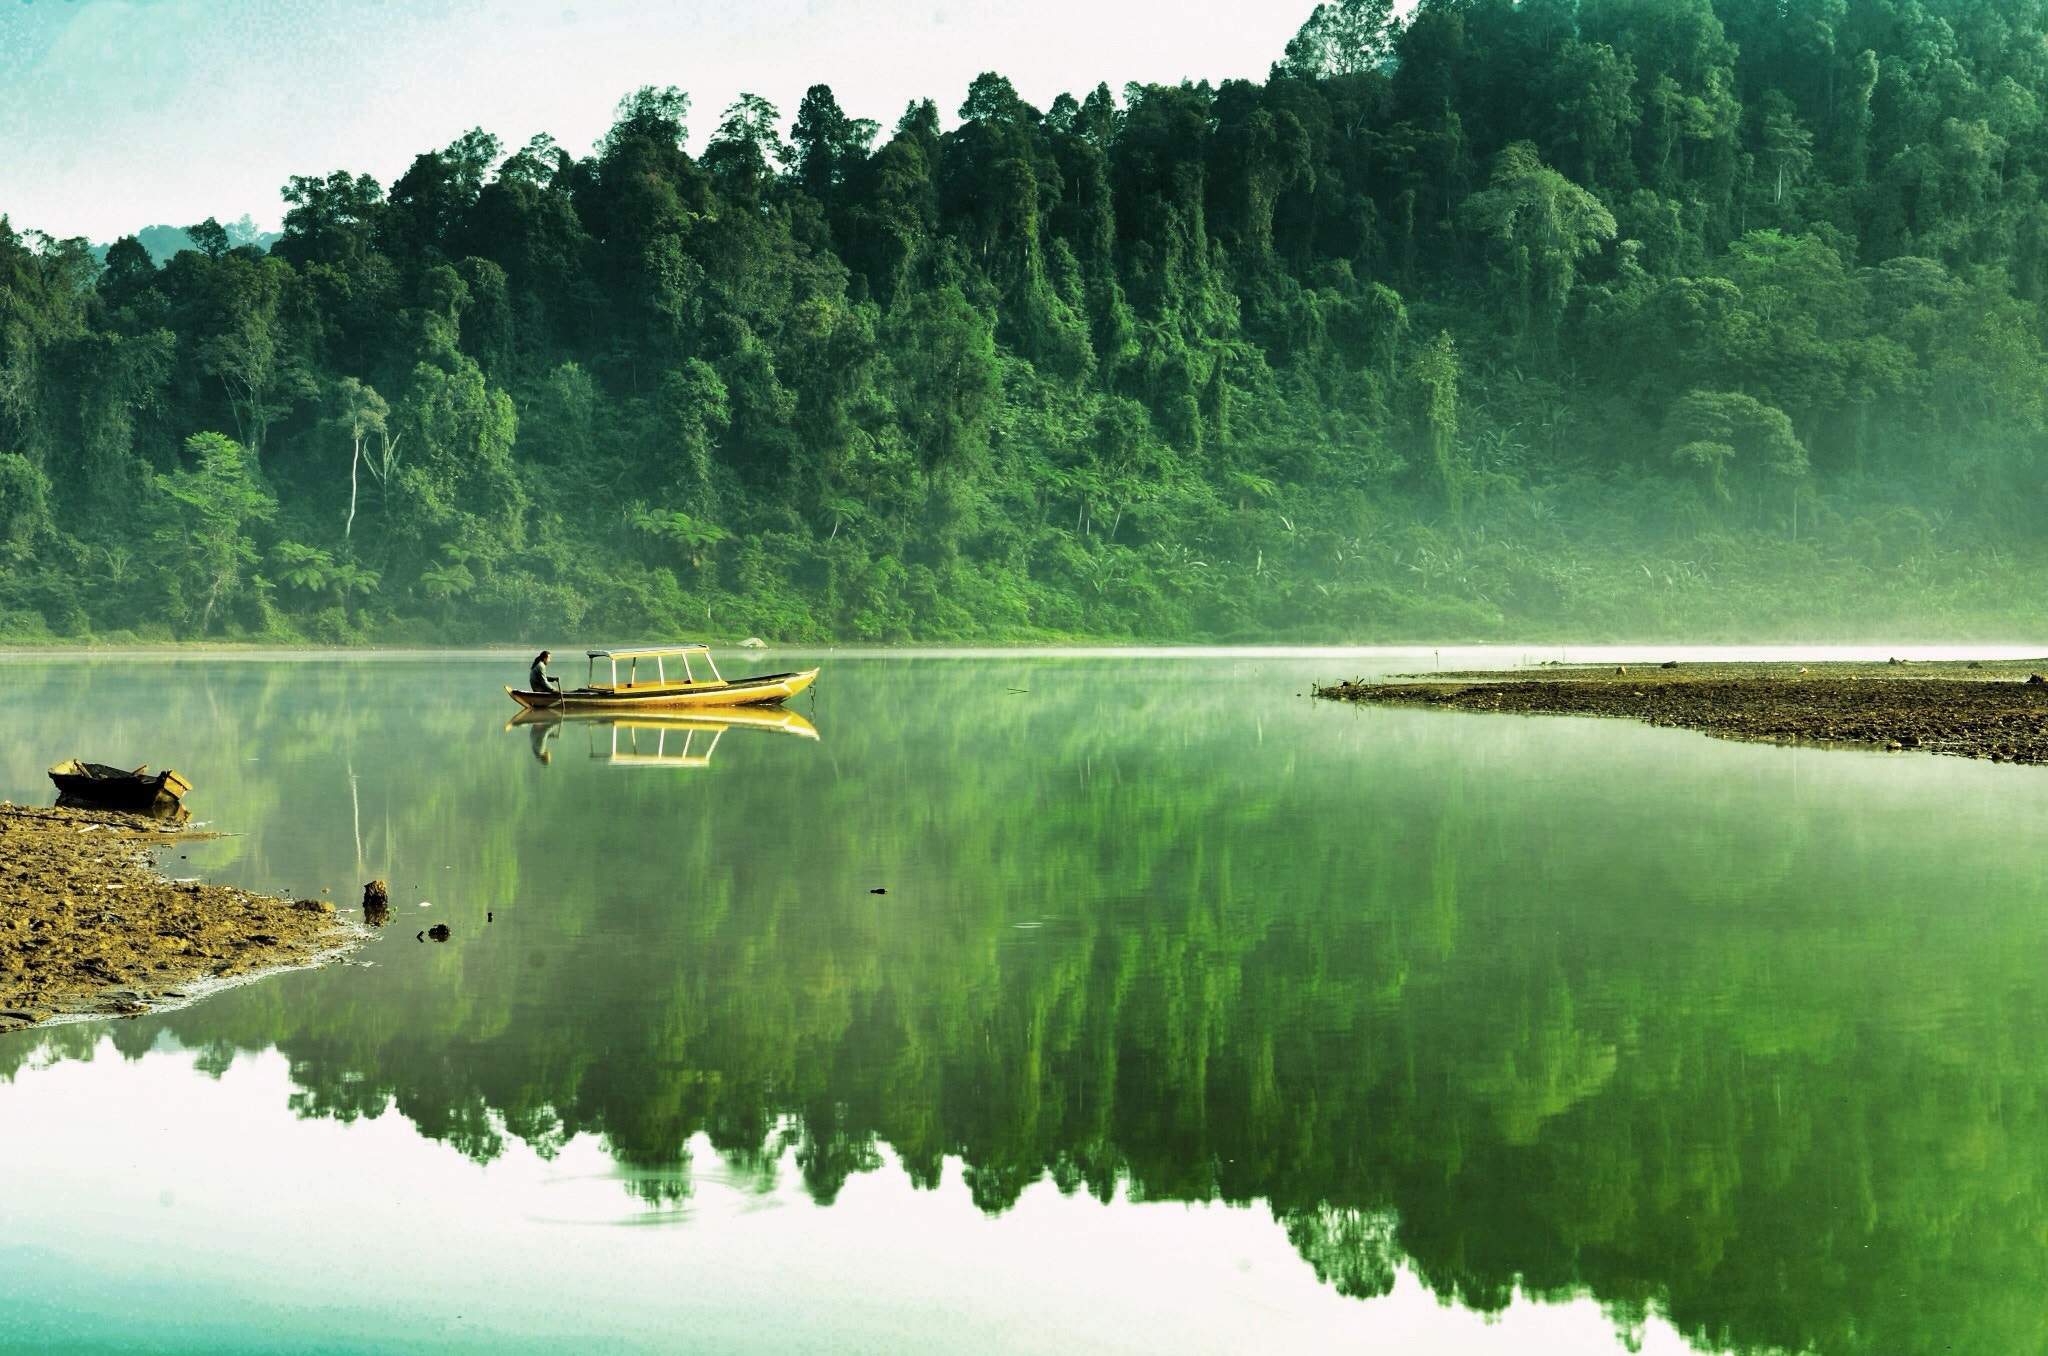 Photograph My Green Reflection by Andri L. P. on 500px